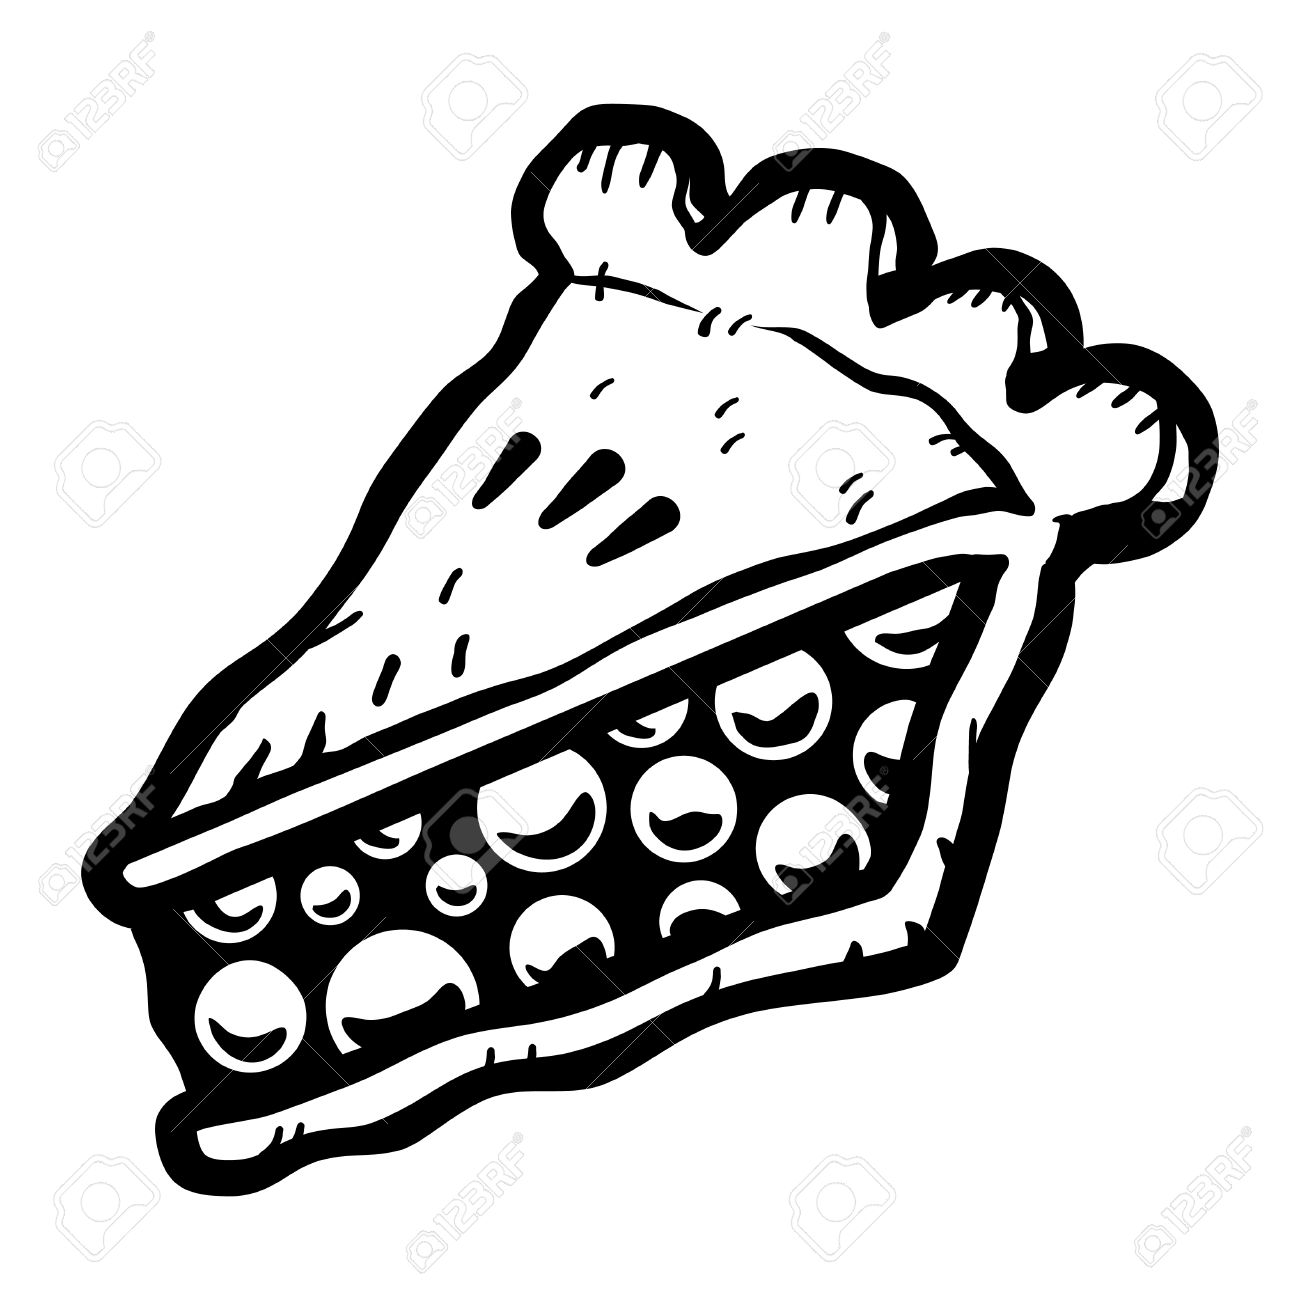 Pie Slice Clipart Black And White.